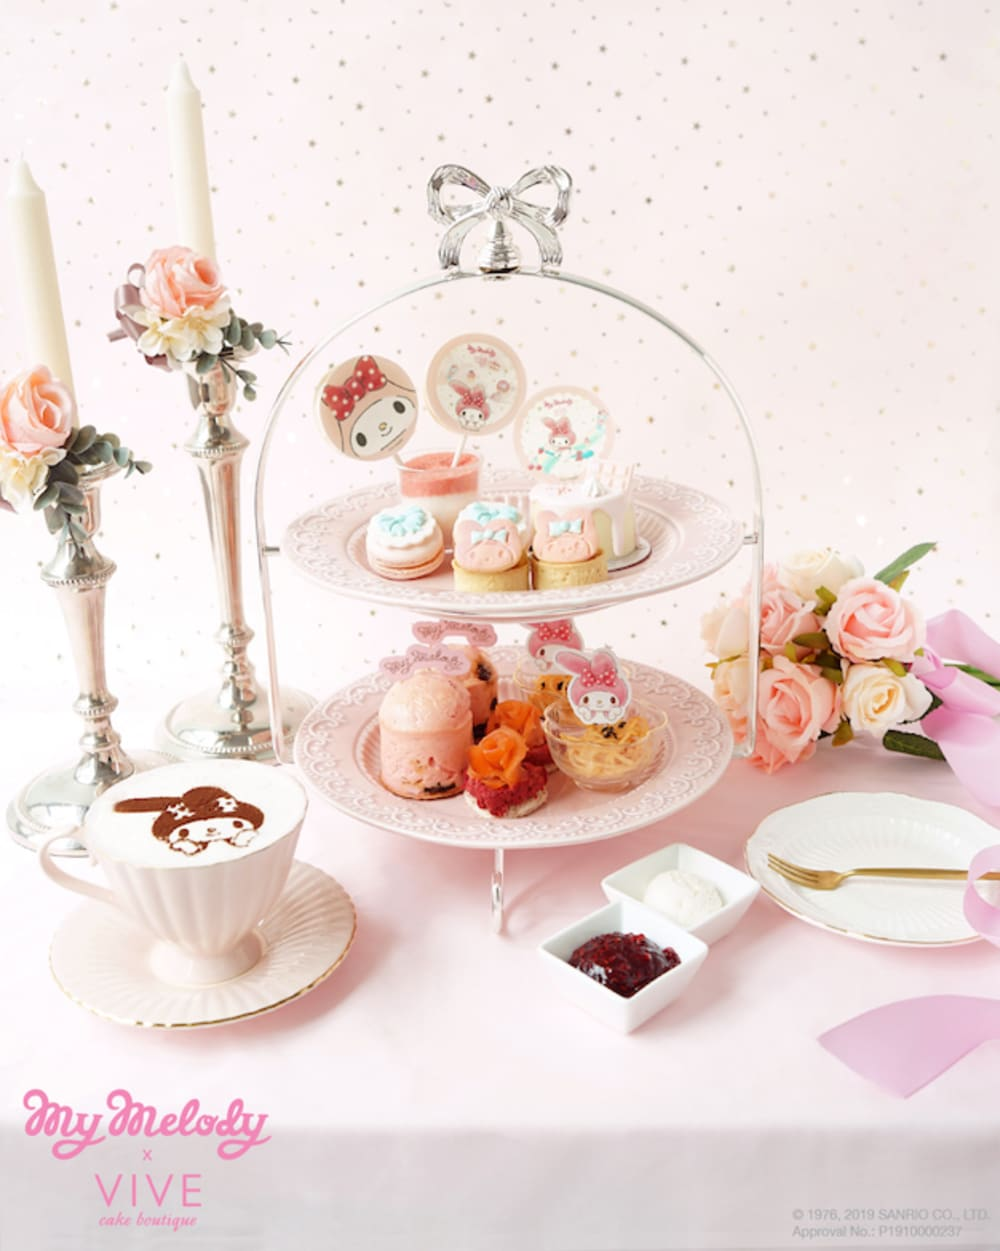 My Melody x VIVE Cake Boutique Hong Kong afternoon tea